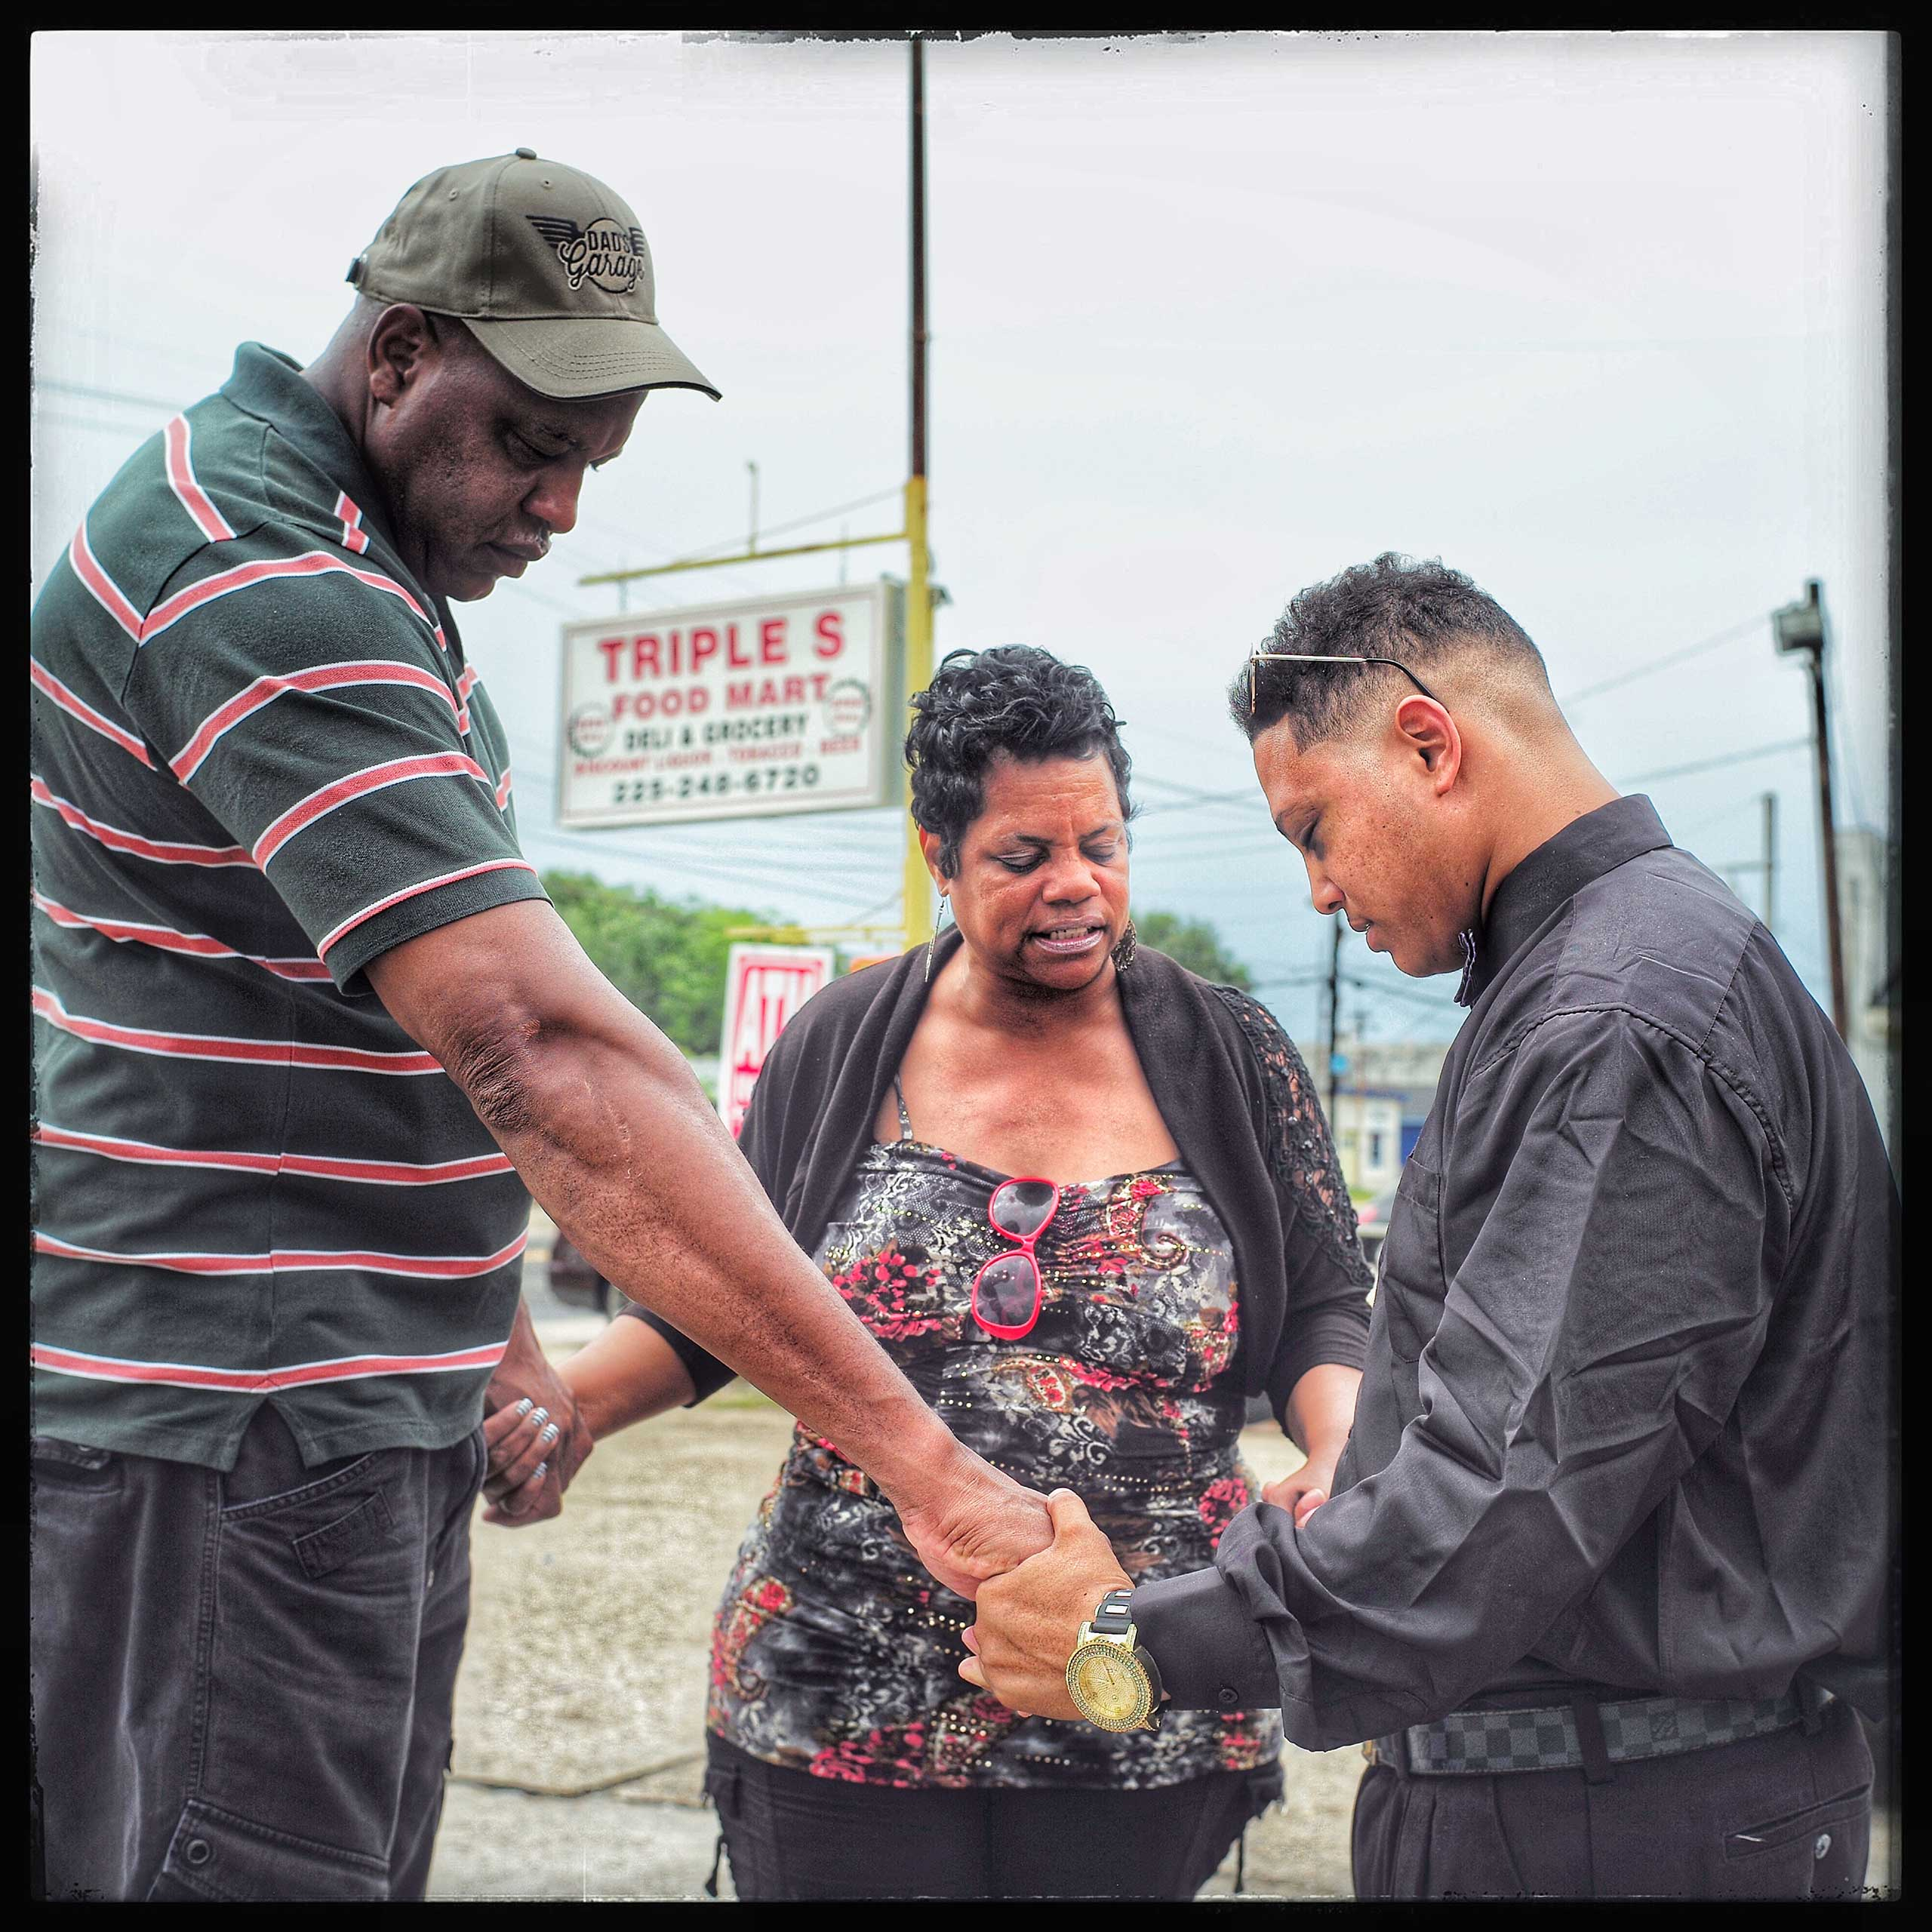 Praying for a successful meeting with 24 year old javier Dunn (far left). Dunn, who was arrested for protesting the Alton Sterling shooting by the Baton Rouge Police Department, was told he had to go see his parol officer as a condition of his release. Here, two community pastors pray with him before his meeting.